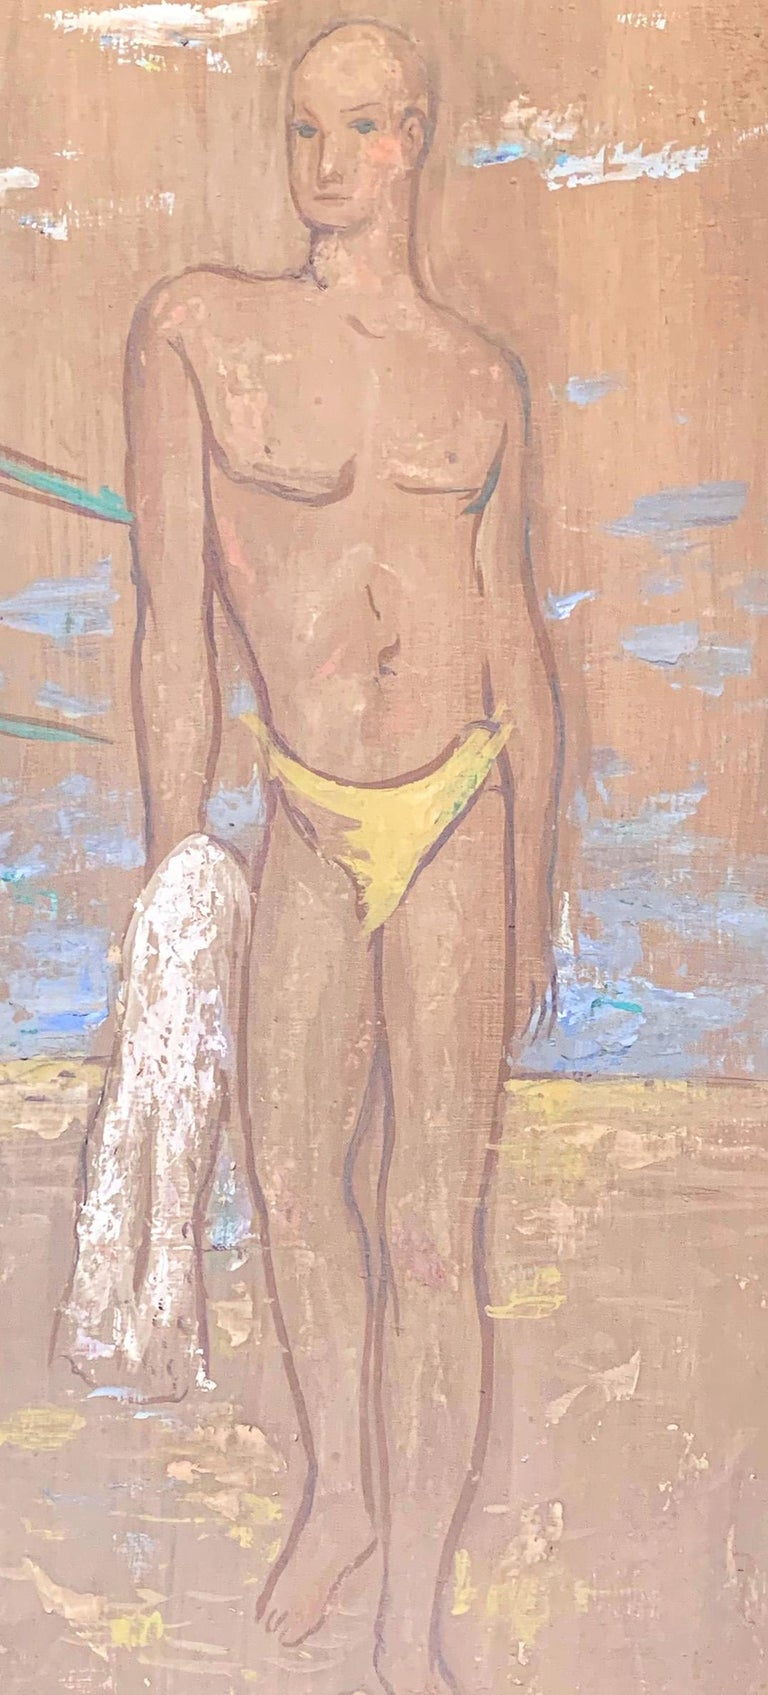 This pale, almost ghostly painting by John Winters depicts a tall, lithe young man with a yellow swimsuit and towel on the beach along Lake Michigan in Chicago, with two other figures under a sheltering canopy to one side. The figure and the setting